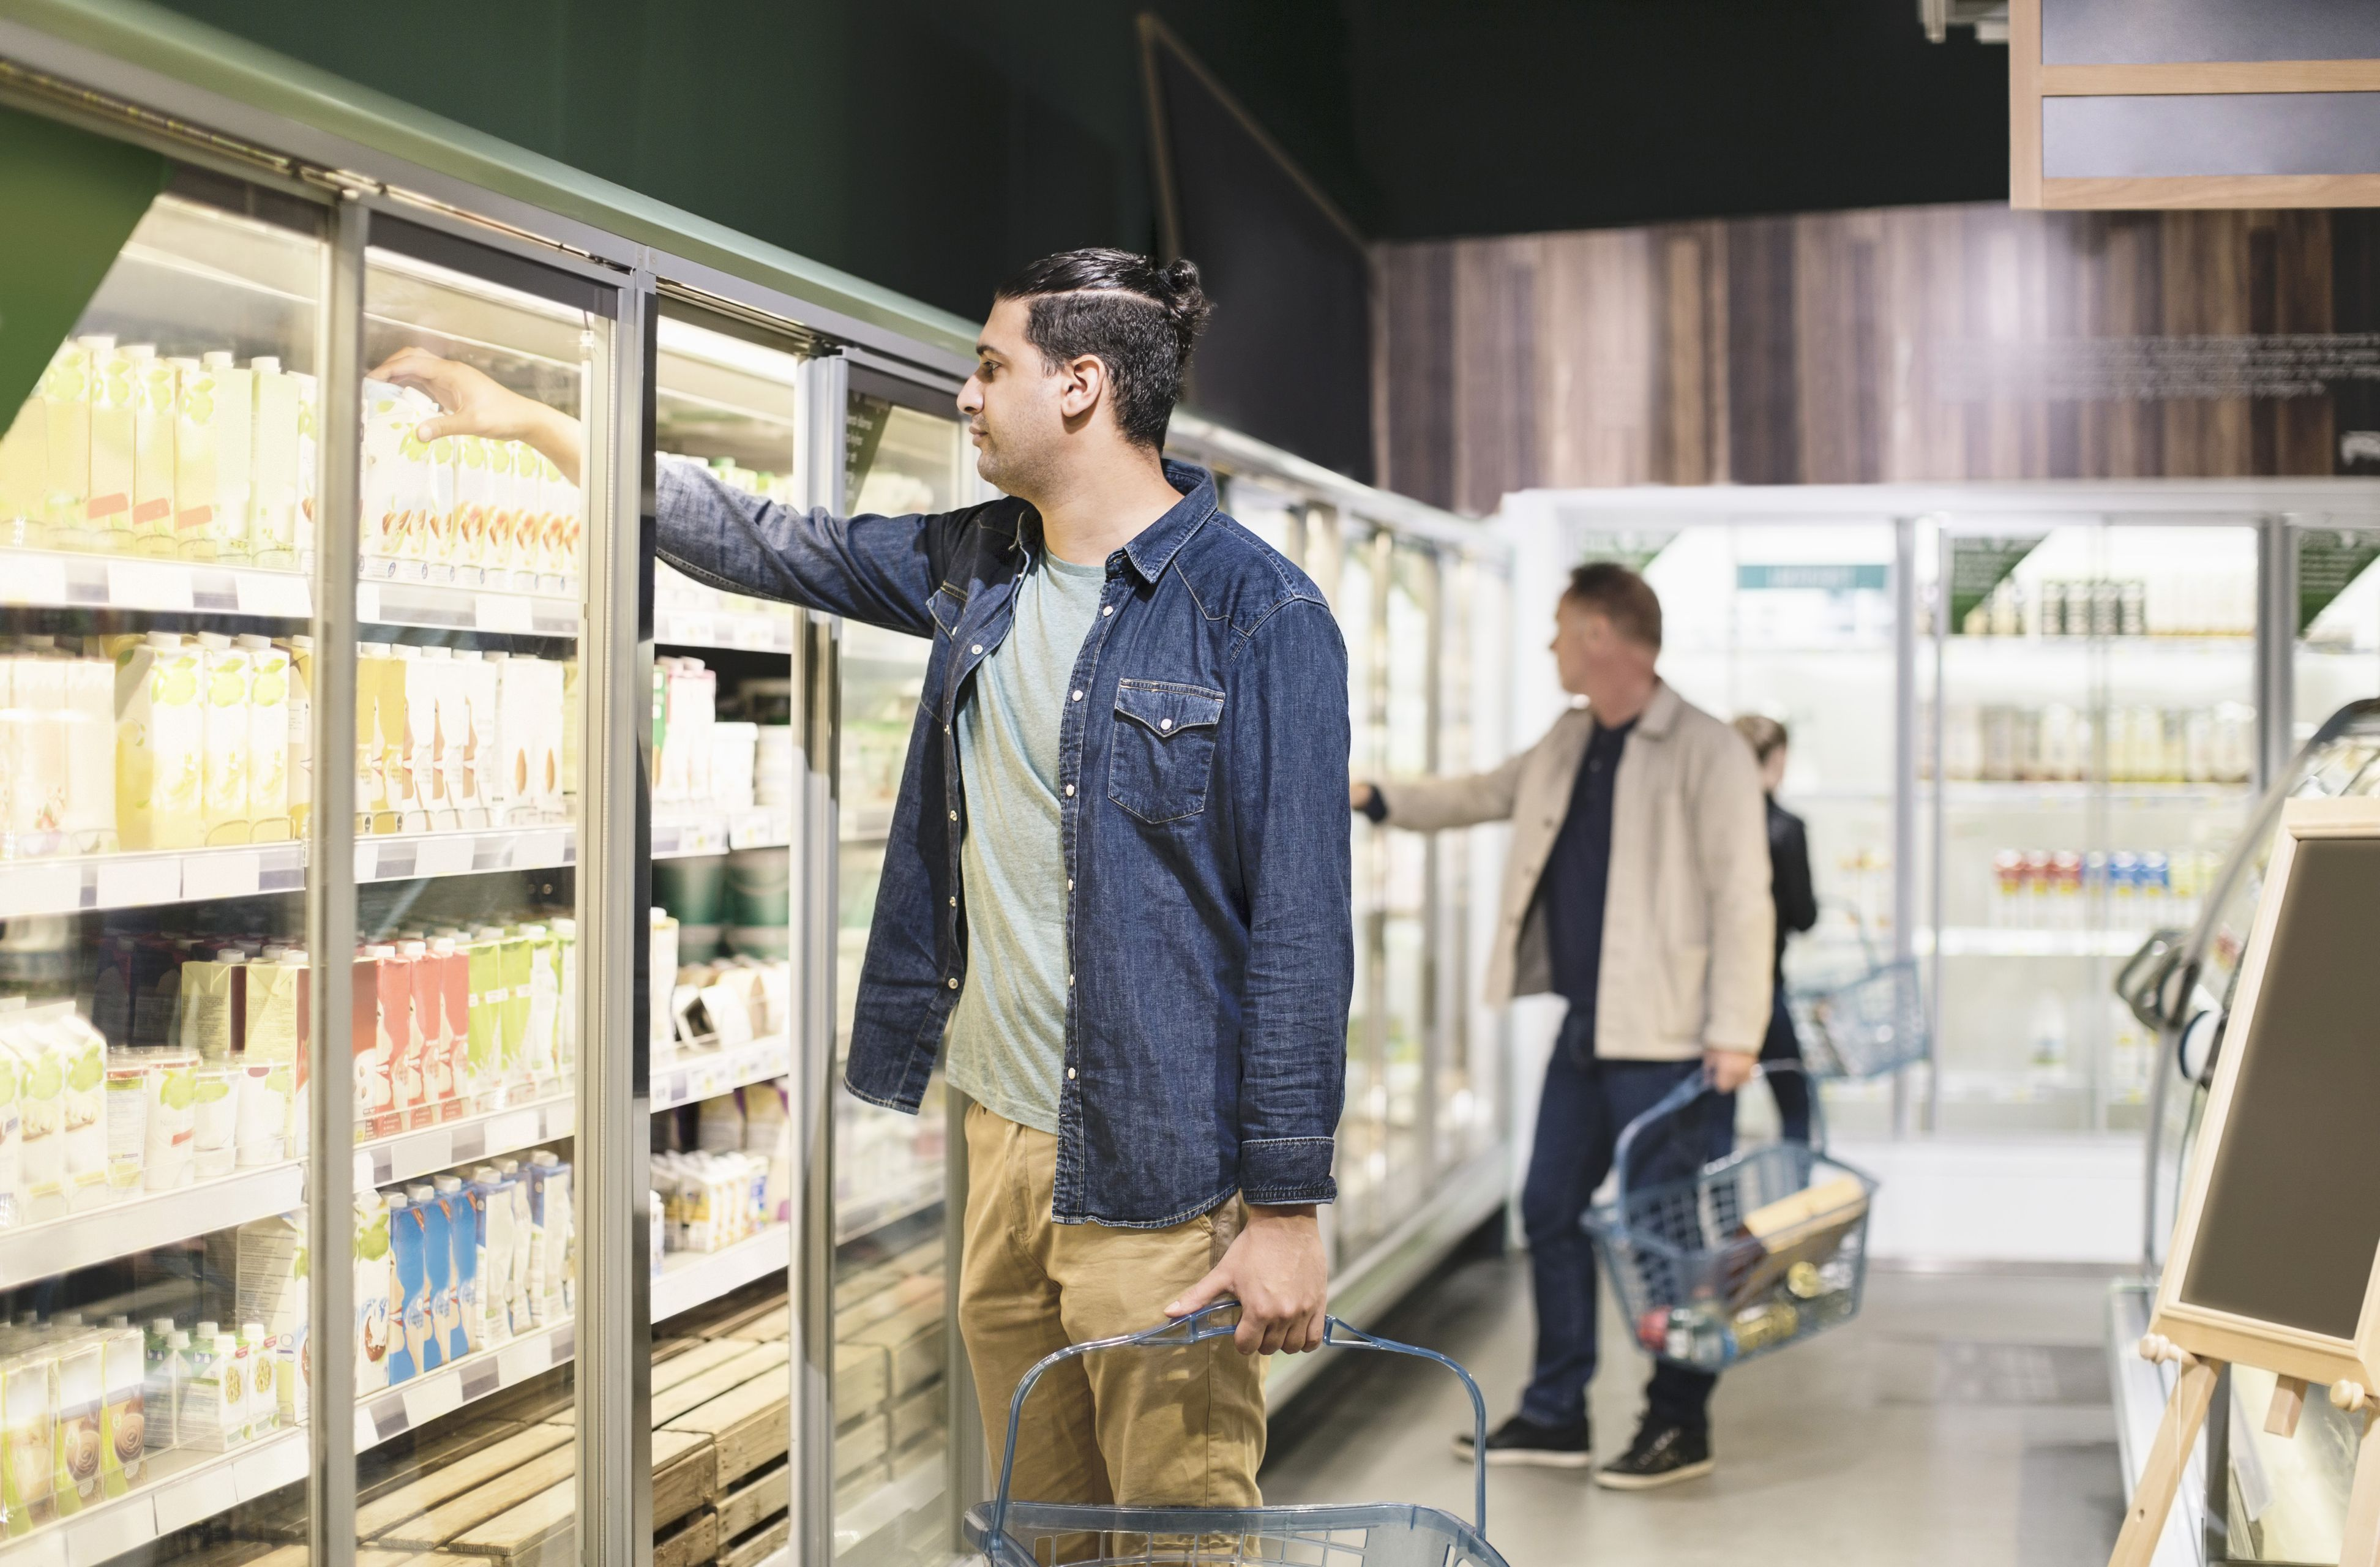 Customers shopping at refrigerated section in supermarket